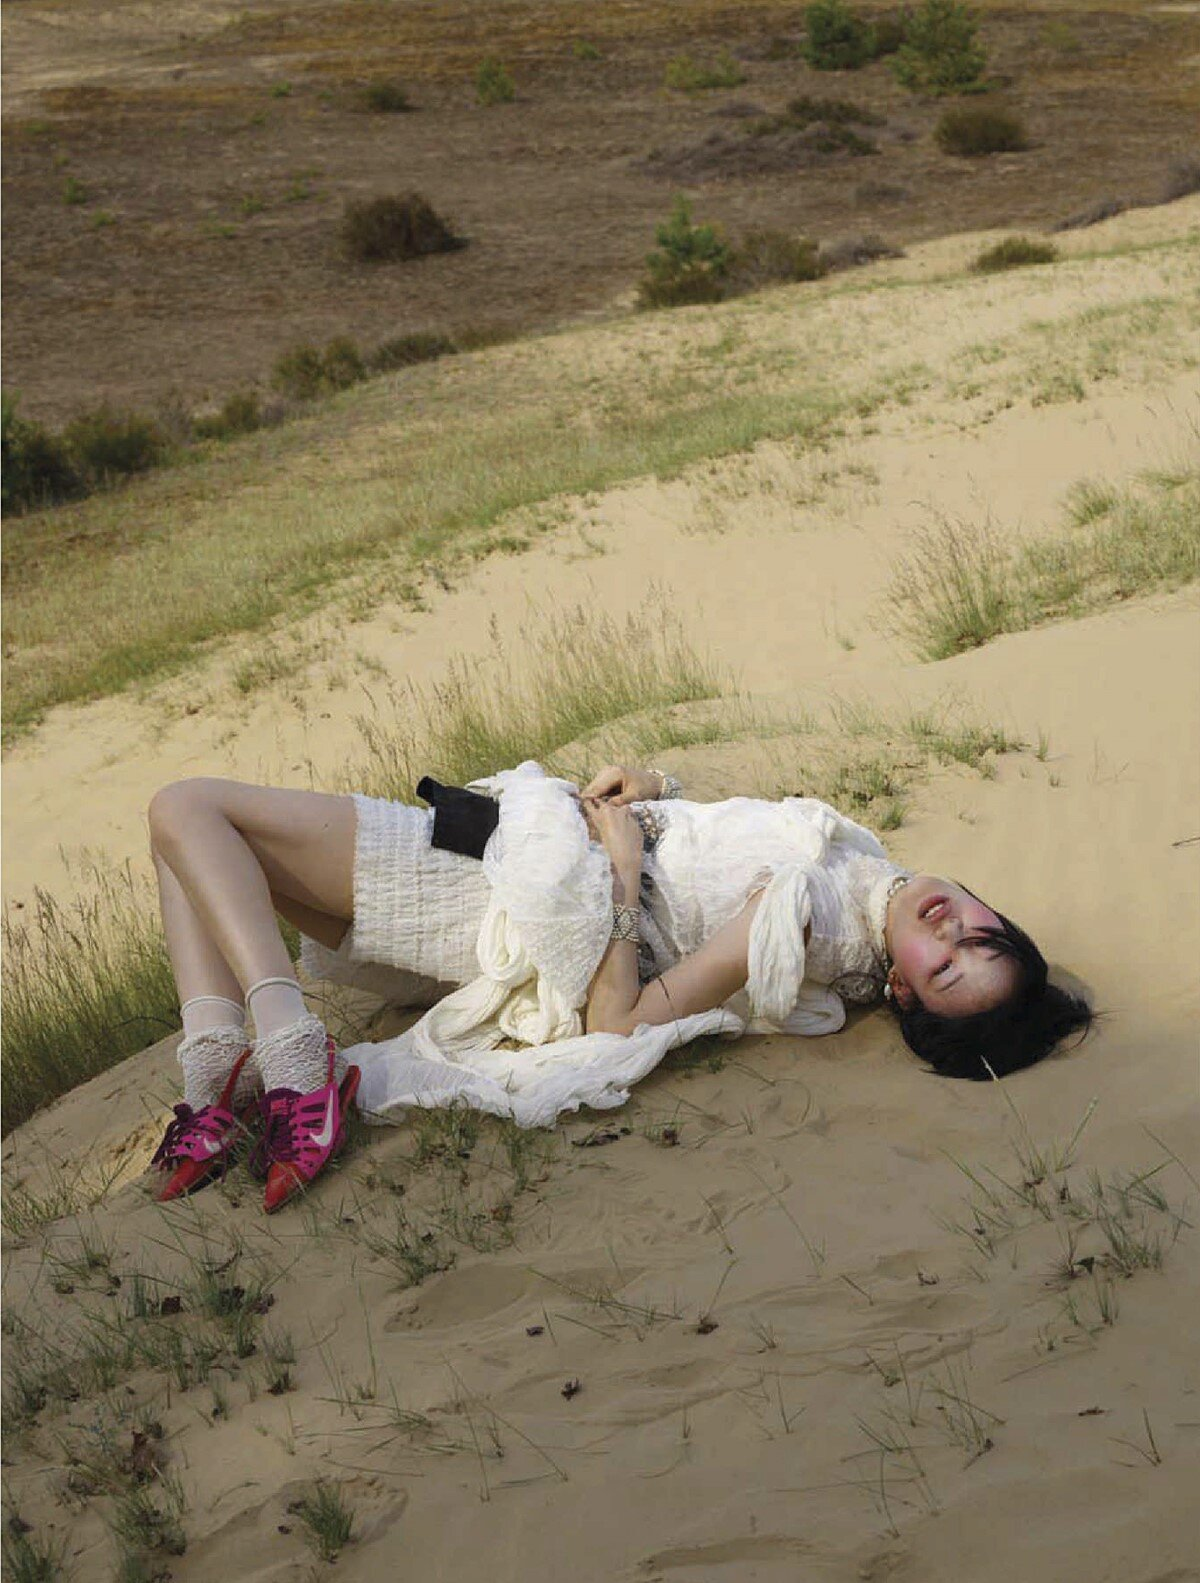 Sora Choi by Viviane Sassen for Vogue China December 2019 (13).jpg